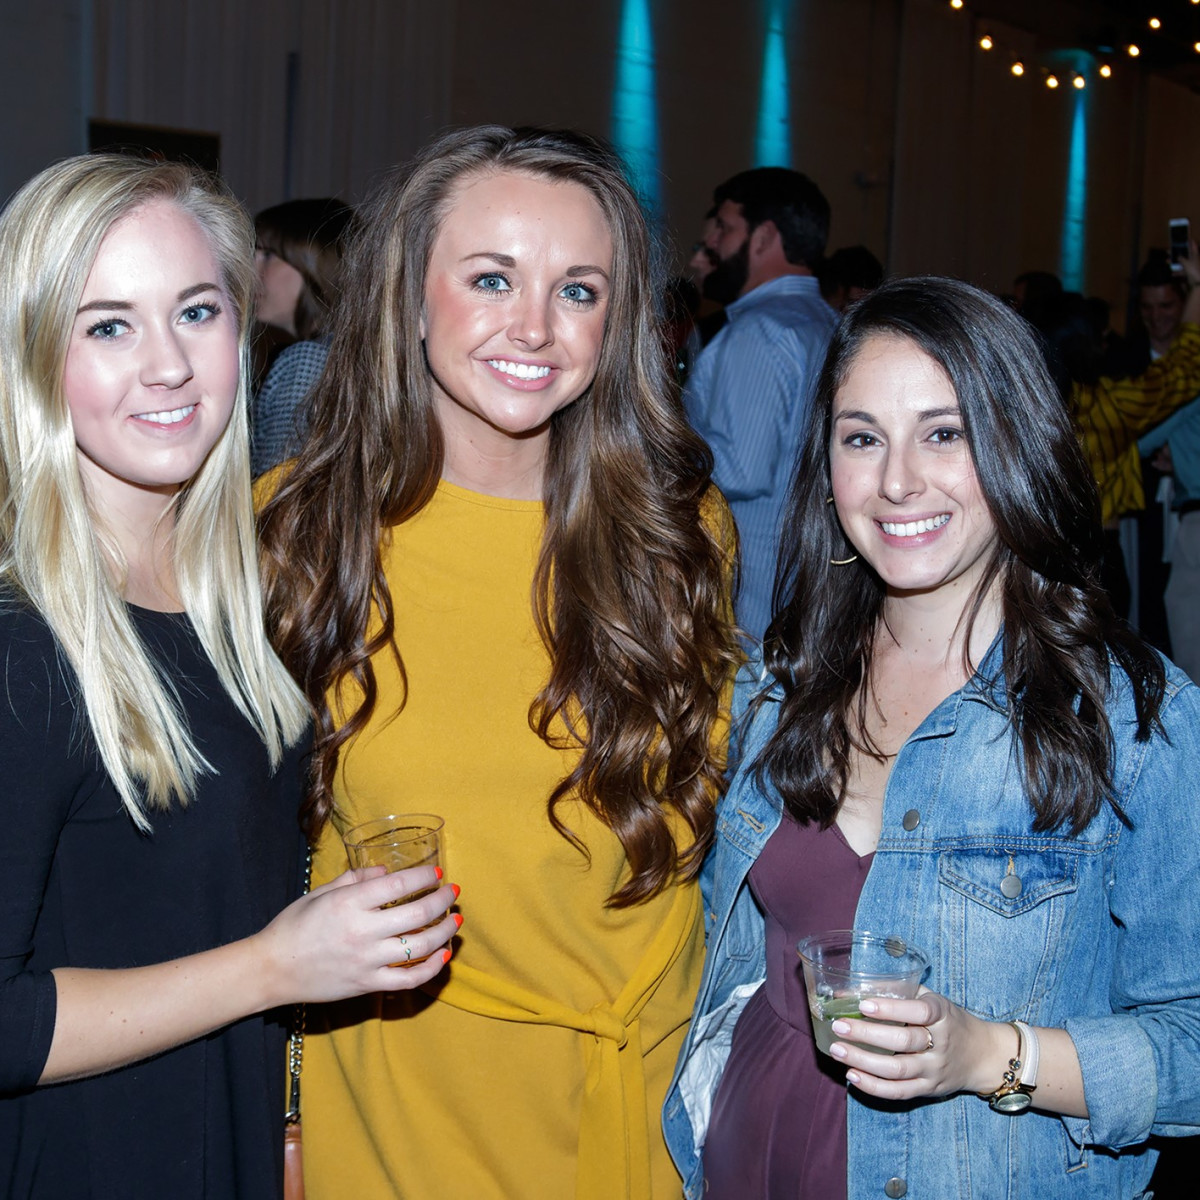 Dallas Tastemaker Awards 2018, Julia Monter, Kortni Robinson, Catherine Festa